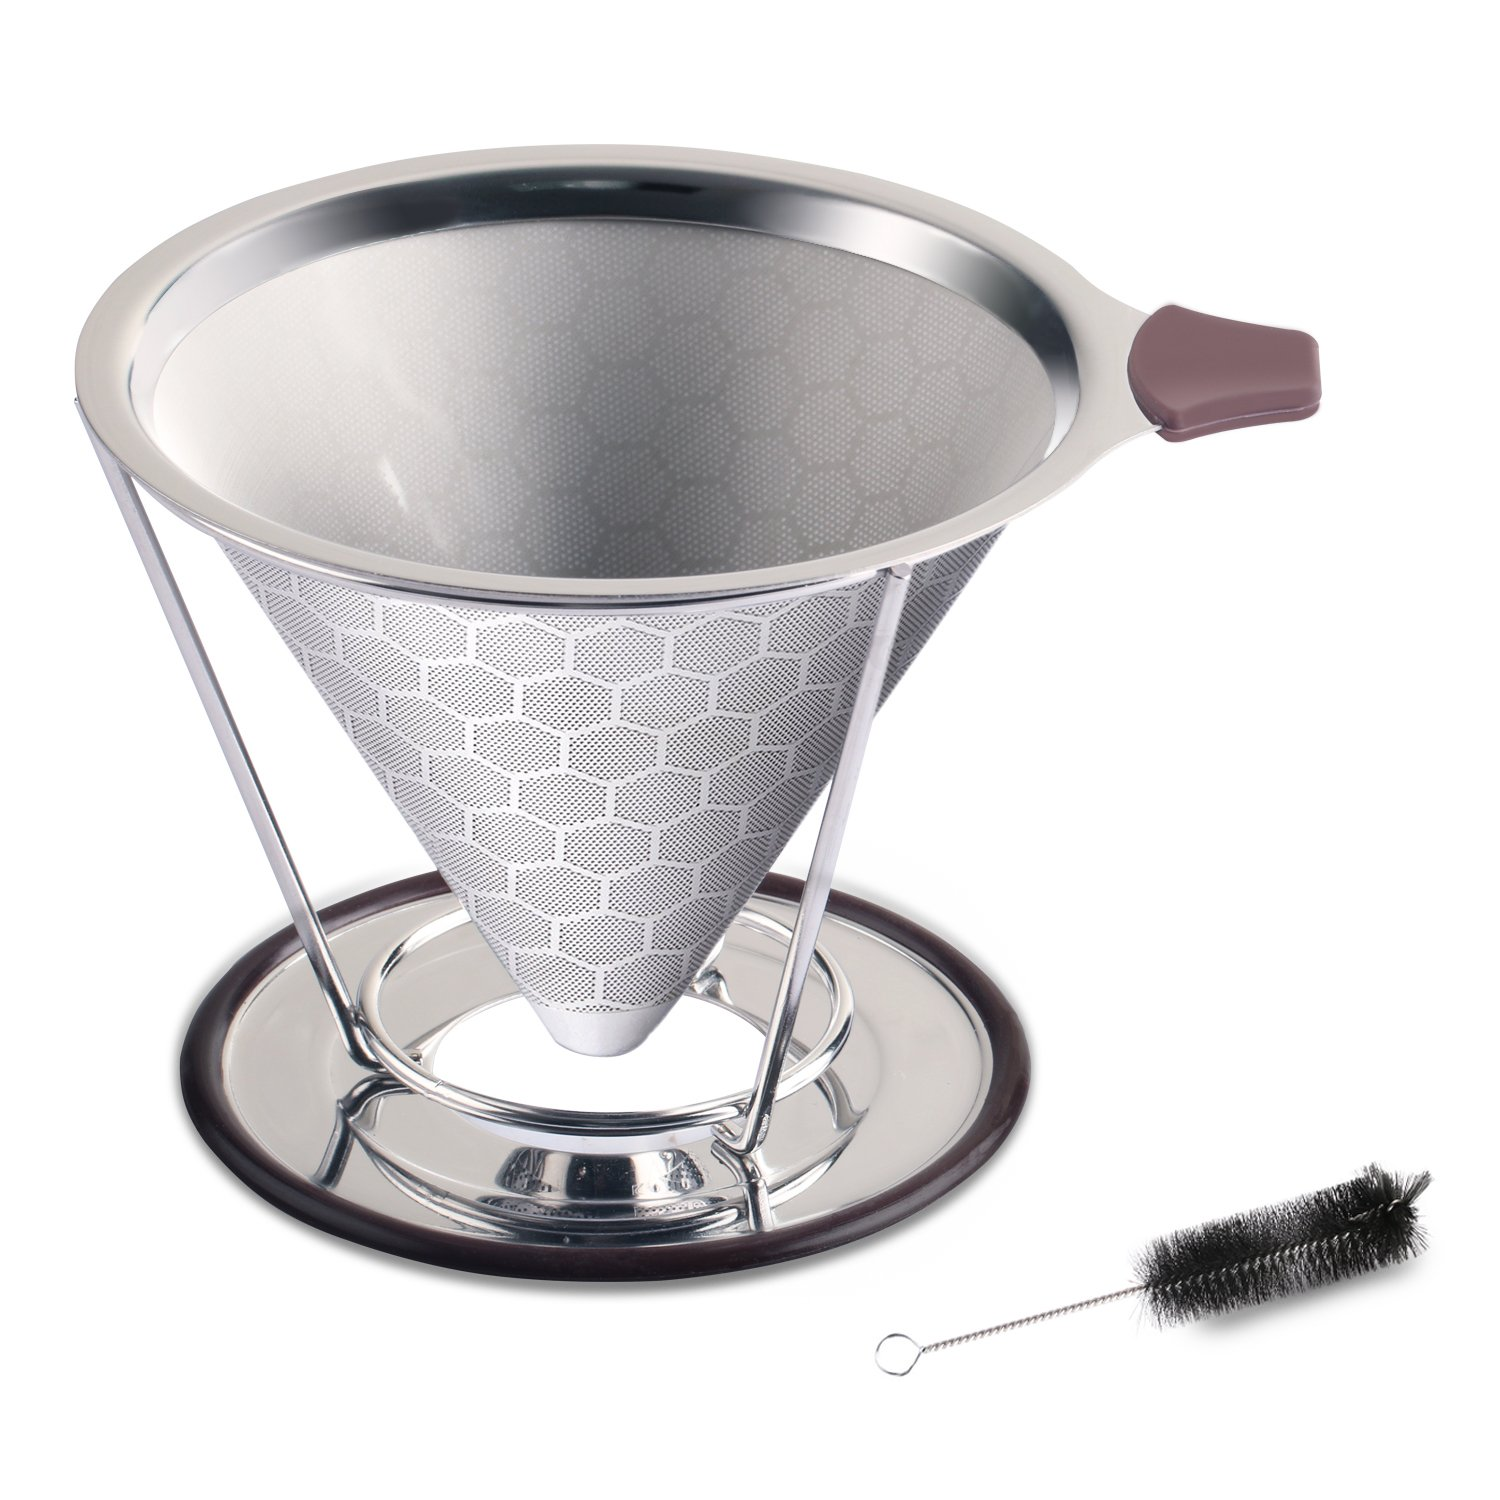 Pour Over Coffee Dripper Set,Paperless Permanent Coffee Filter for Home Travel,Reusable Manual Coffee Maker Father's Day,Stainless Steel Coffee Brewer with Pot Mug Cup Stand and Gift Box